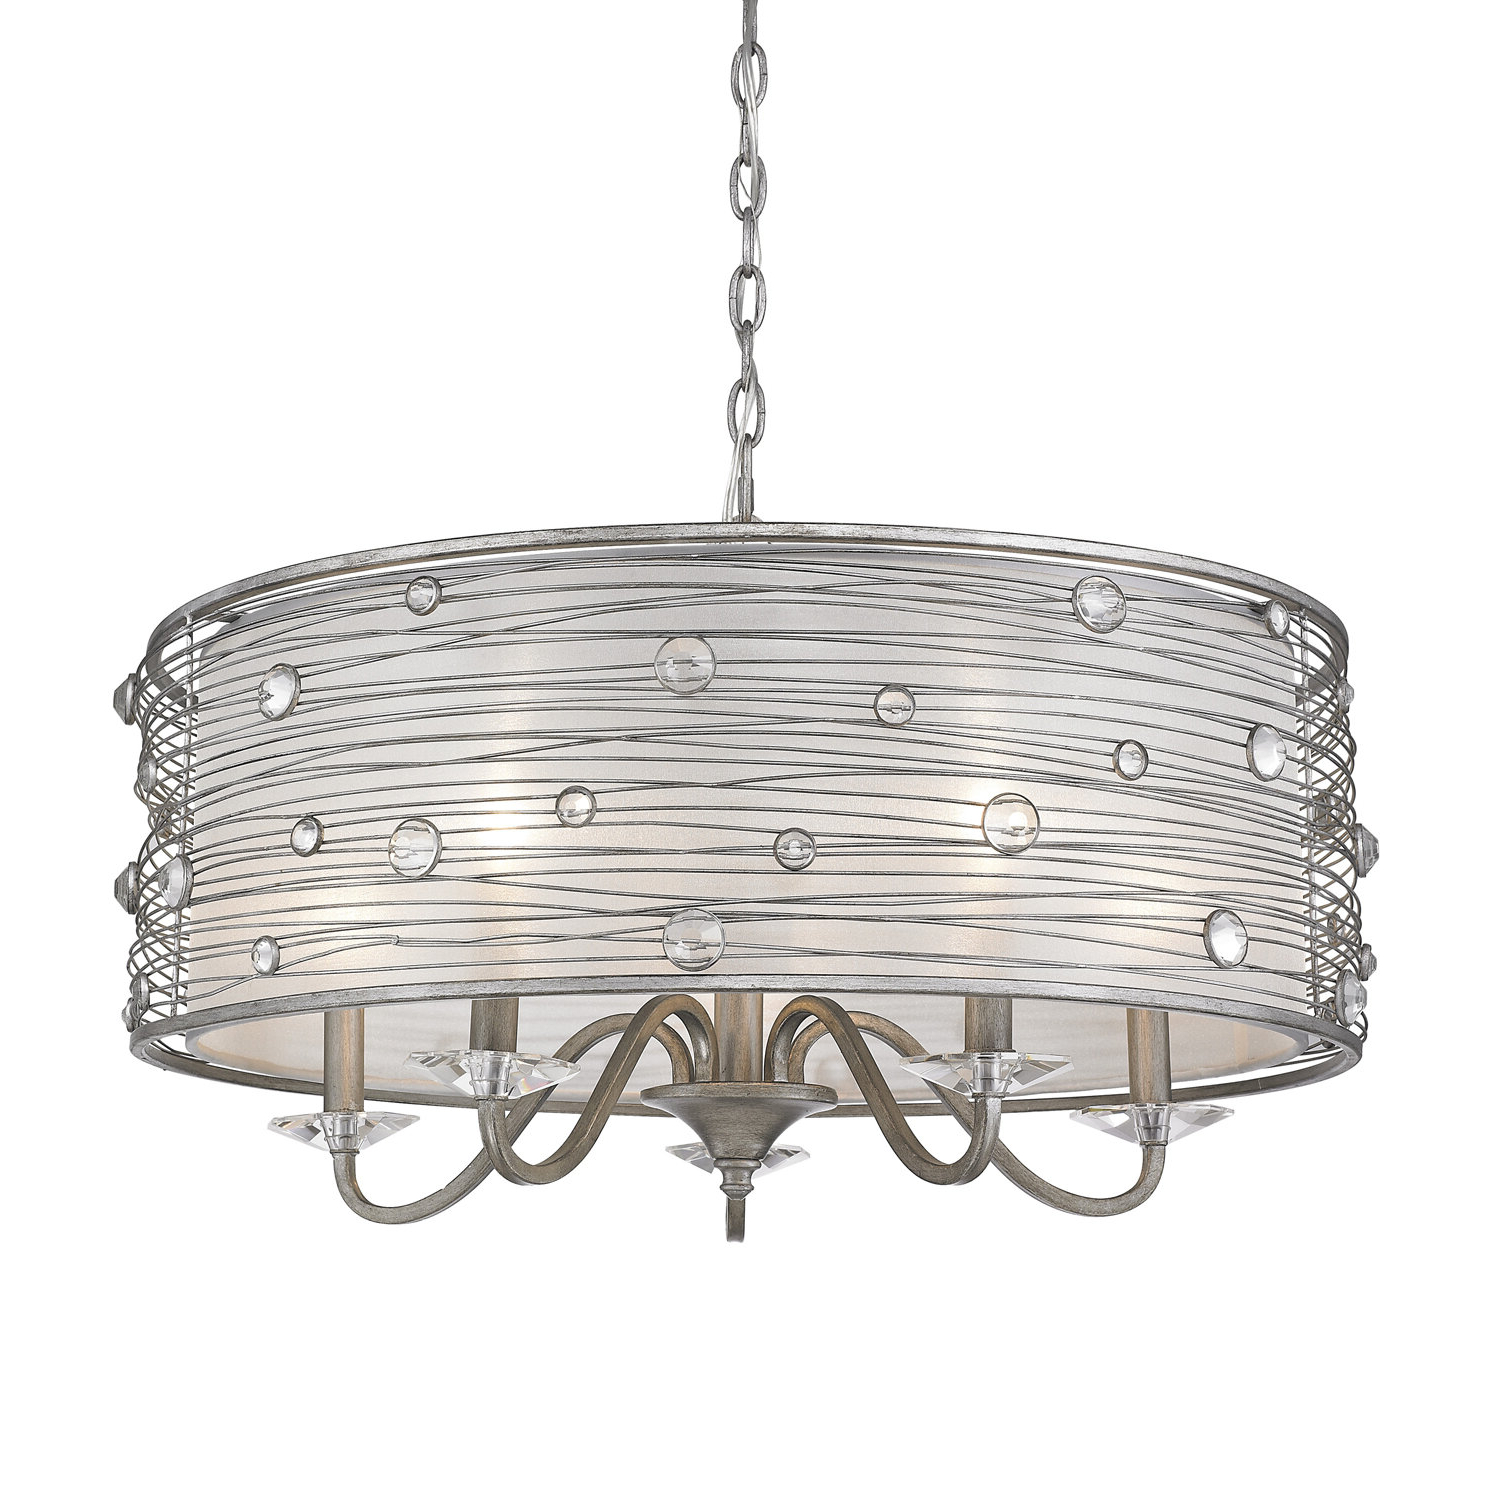 Newest Hermione 5 Light Drum Chandelier Pertaining To Hermione 1 Light Single Drum Pendants (View 16 of 20)